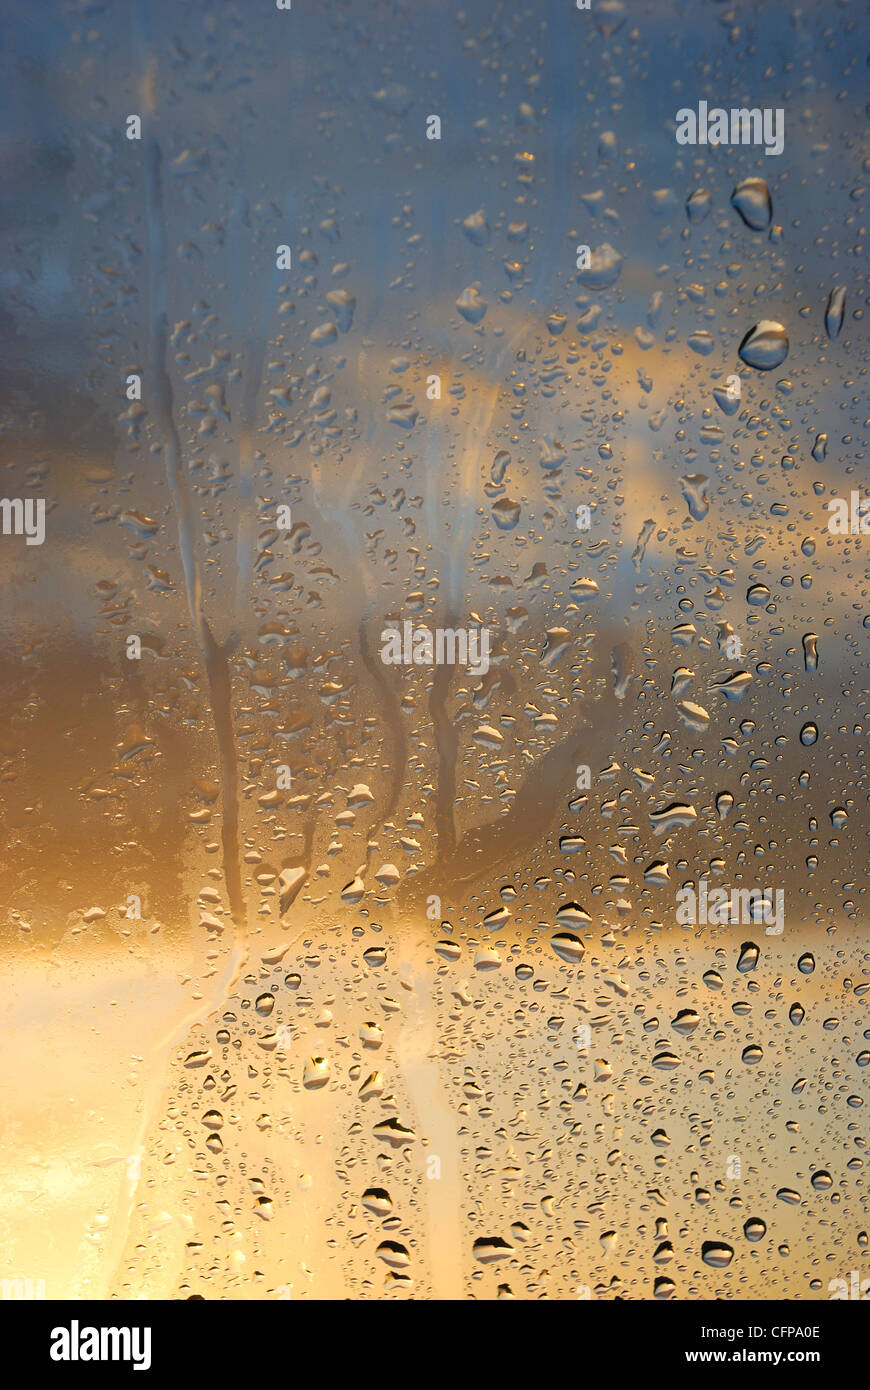 Condensation on the window - Stock Image